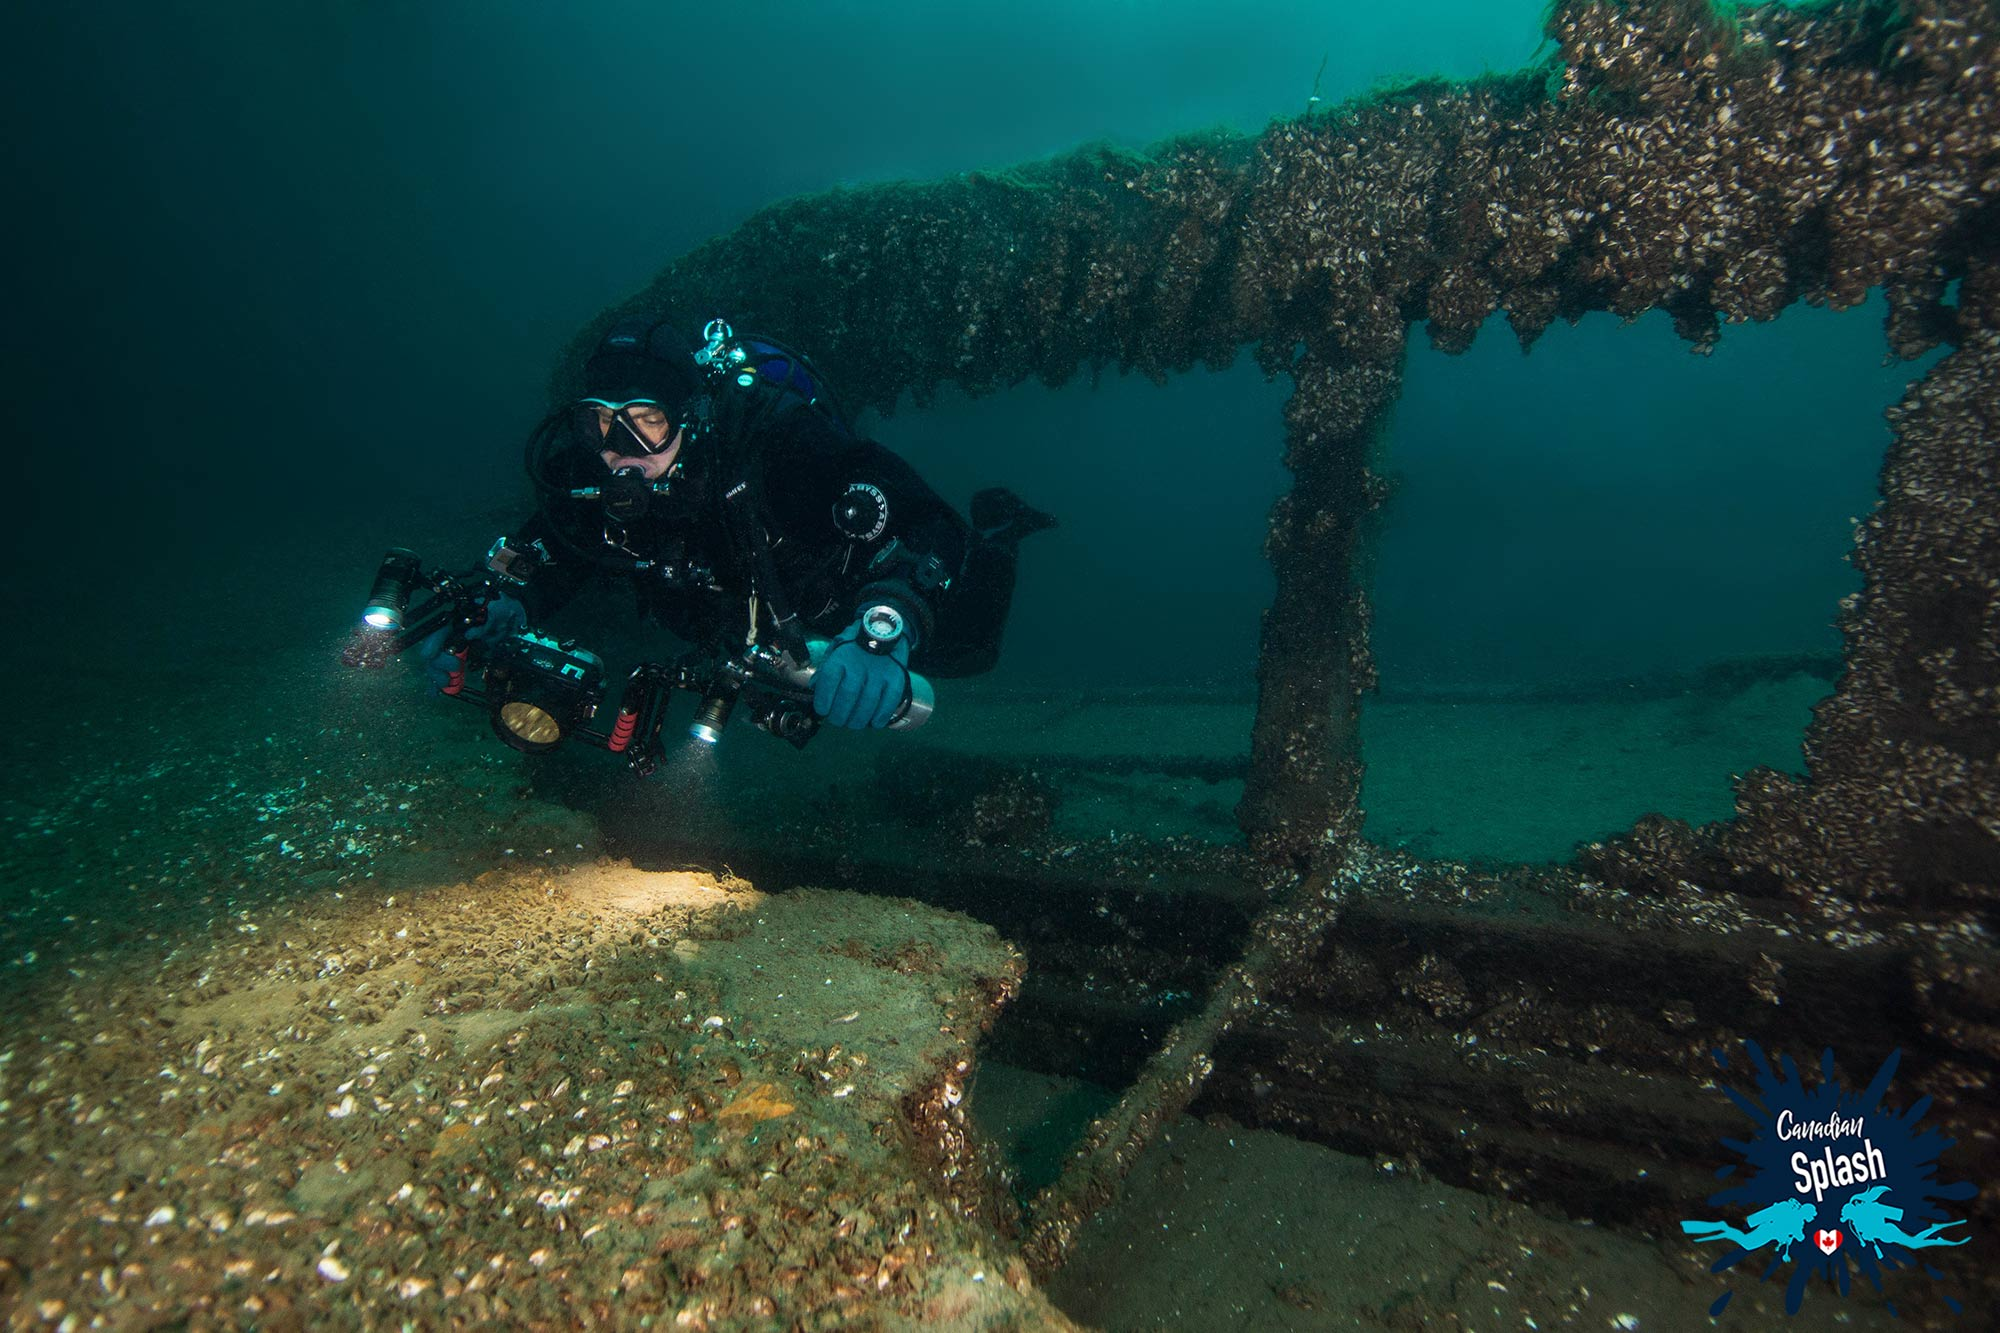 Joey Swimming Through The Wooden Remains Of The Forest City Shipwreck In Tobermory, Ontario, Scuba Diving Canada